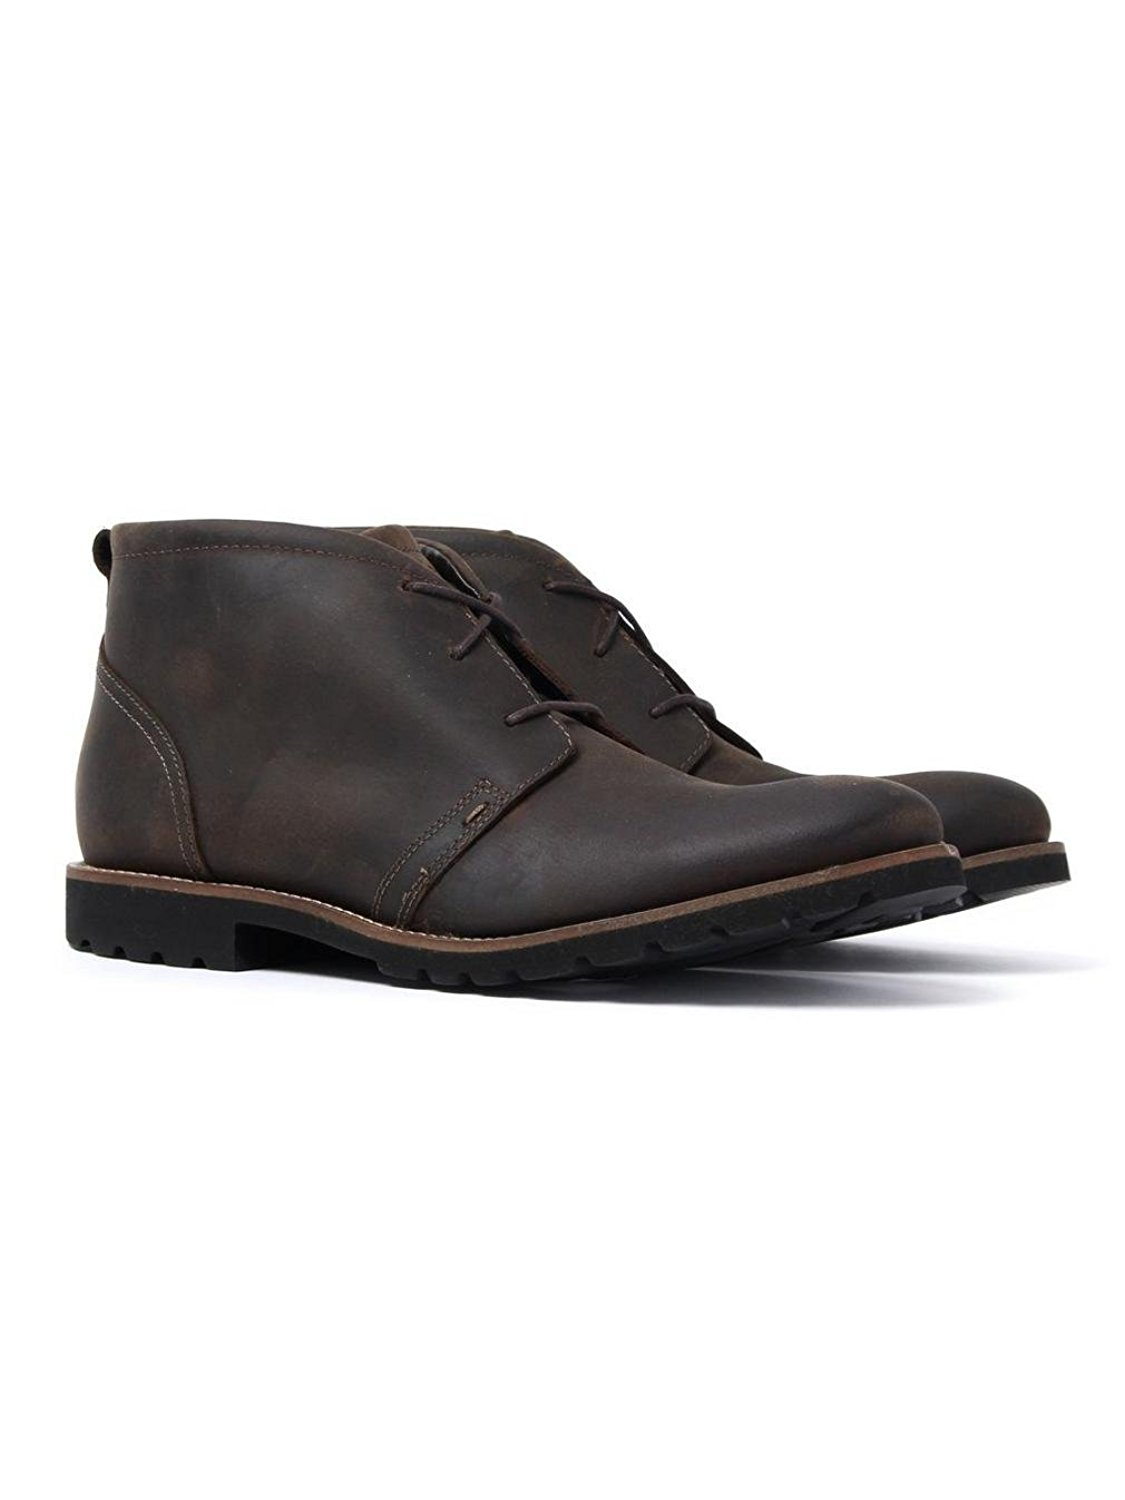 b28d5f512bb Cheap Rockport Boots Men, find Rockport Boots Men deals on line at ...